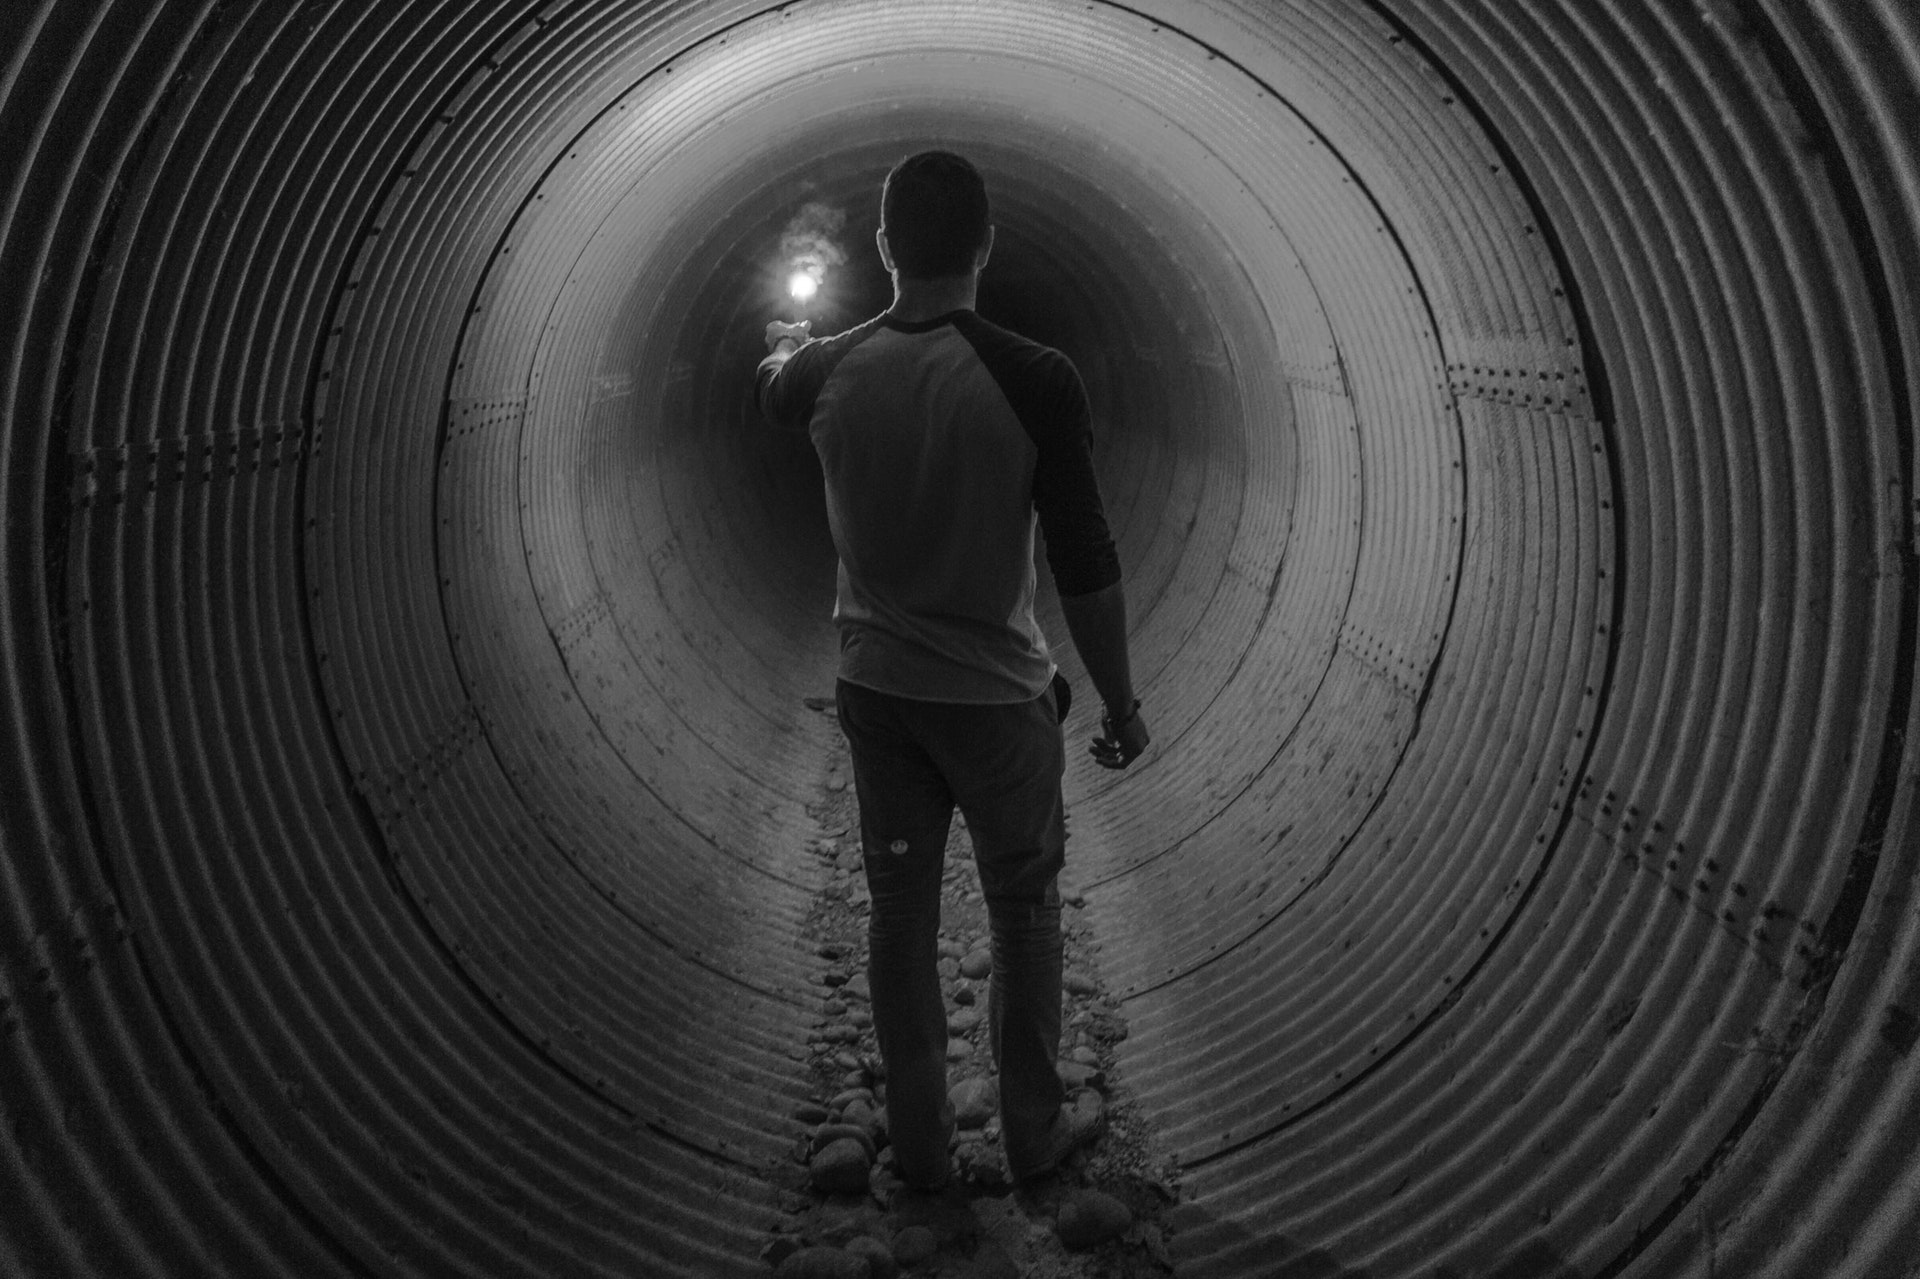 Man alone in tunnel